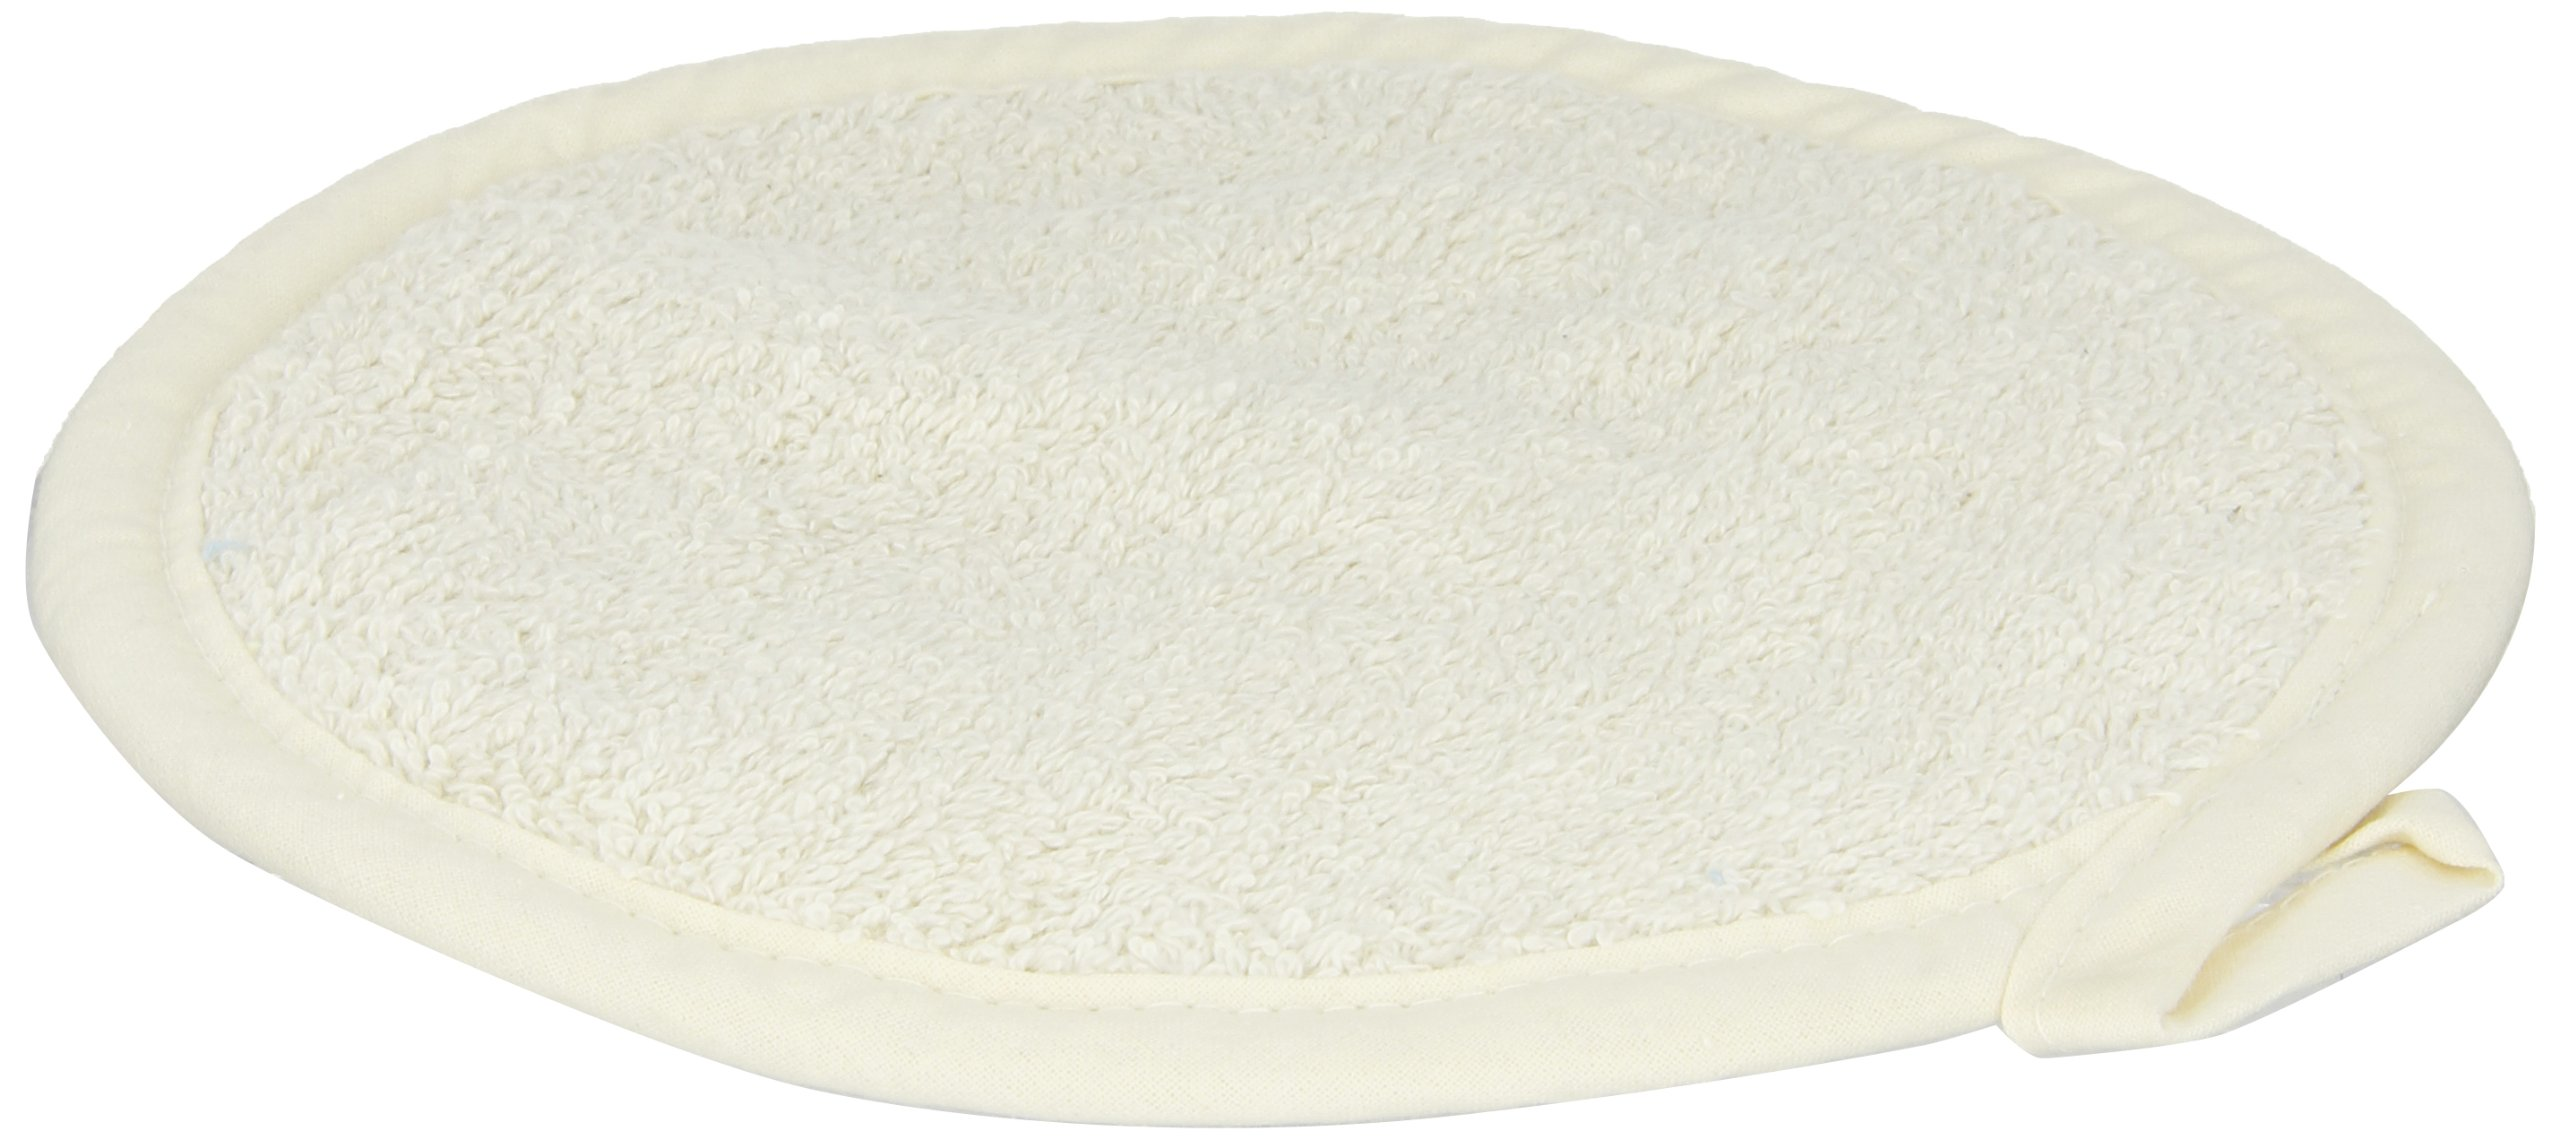 San Jamar 813RPH Heavy Duty Terry Cloth Round Pot Holder, 8'' Diameter x 8'' Length (Pack of 12)